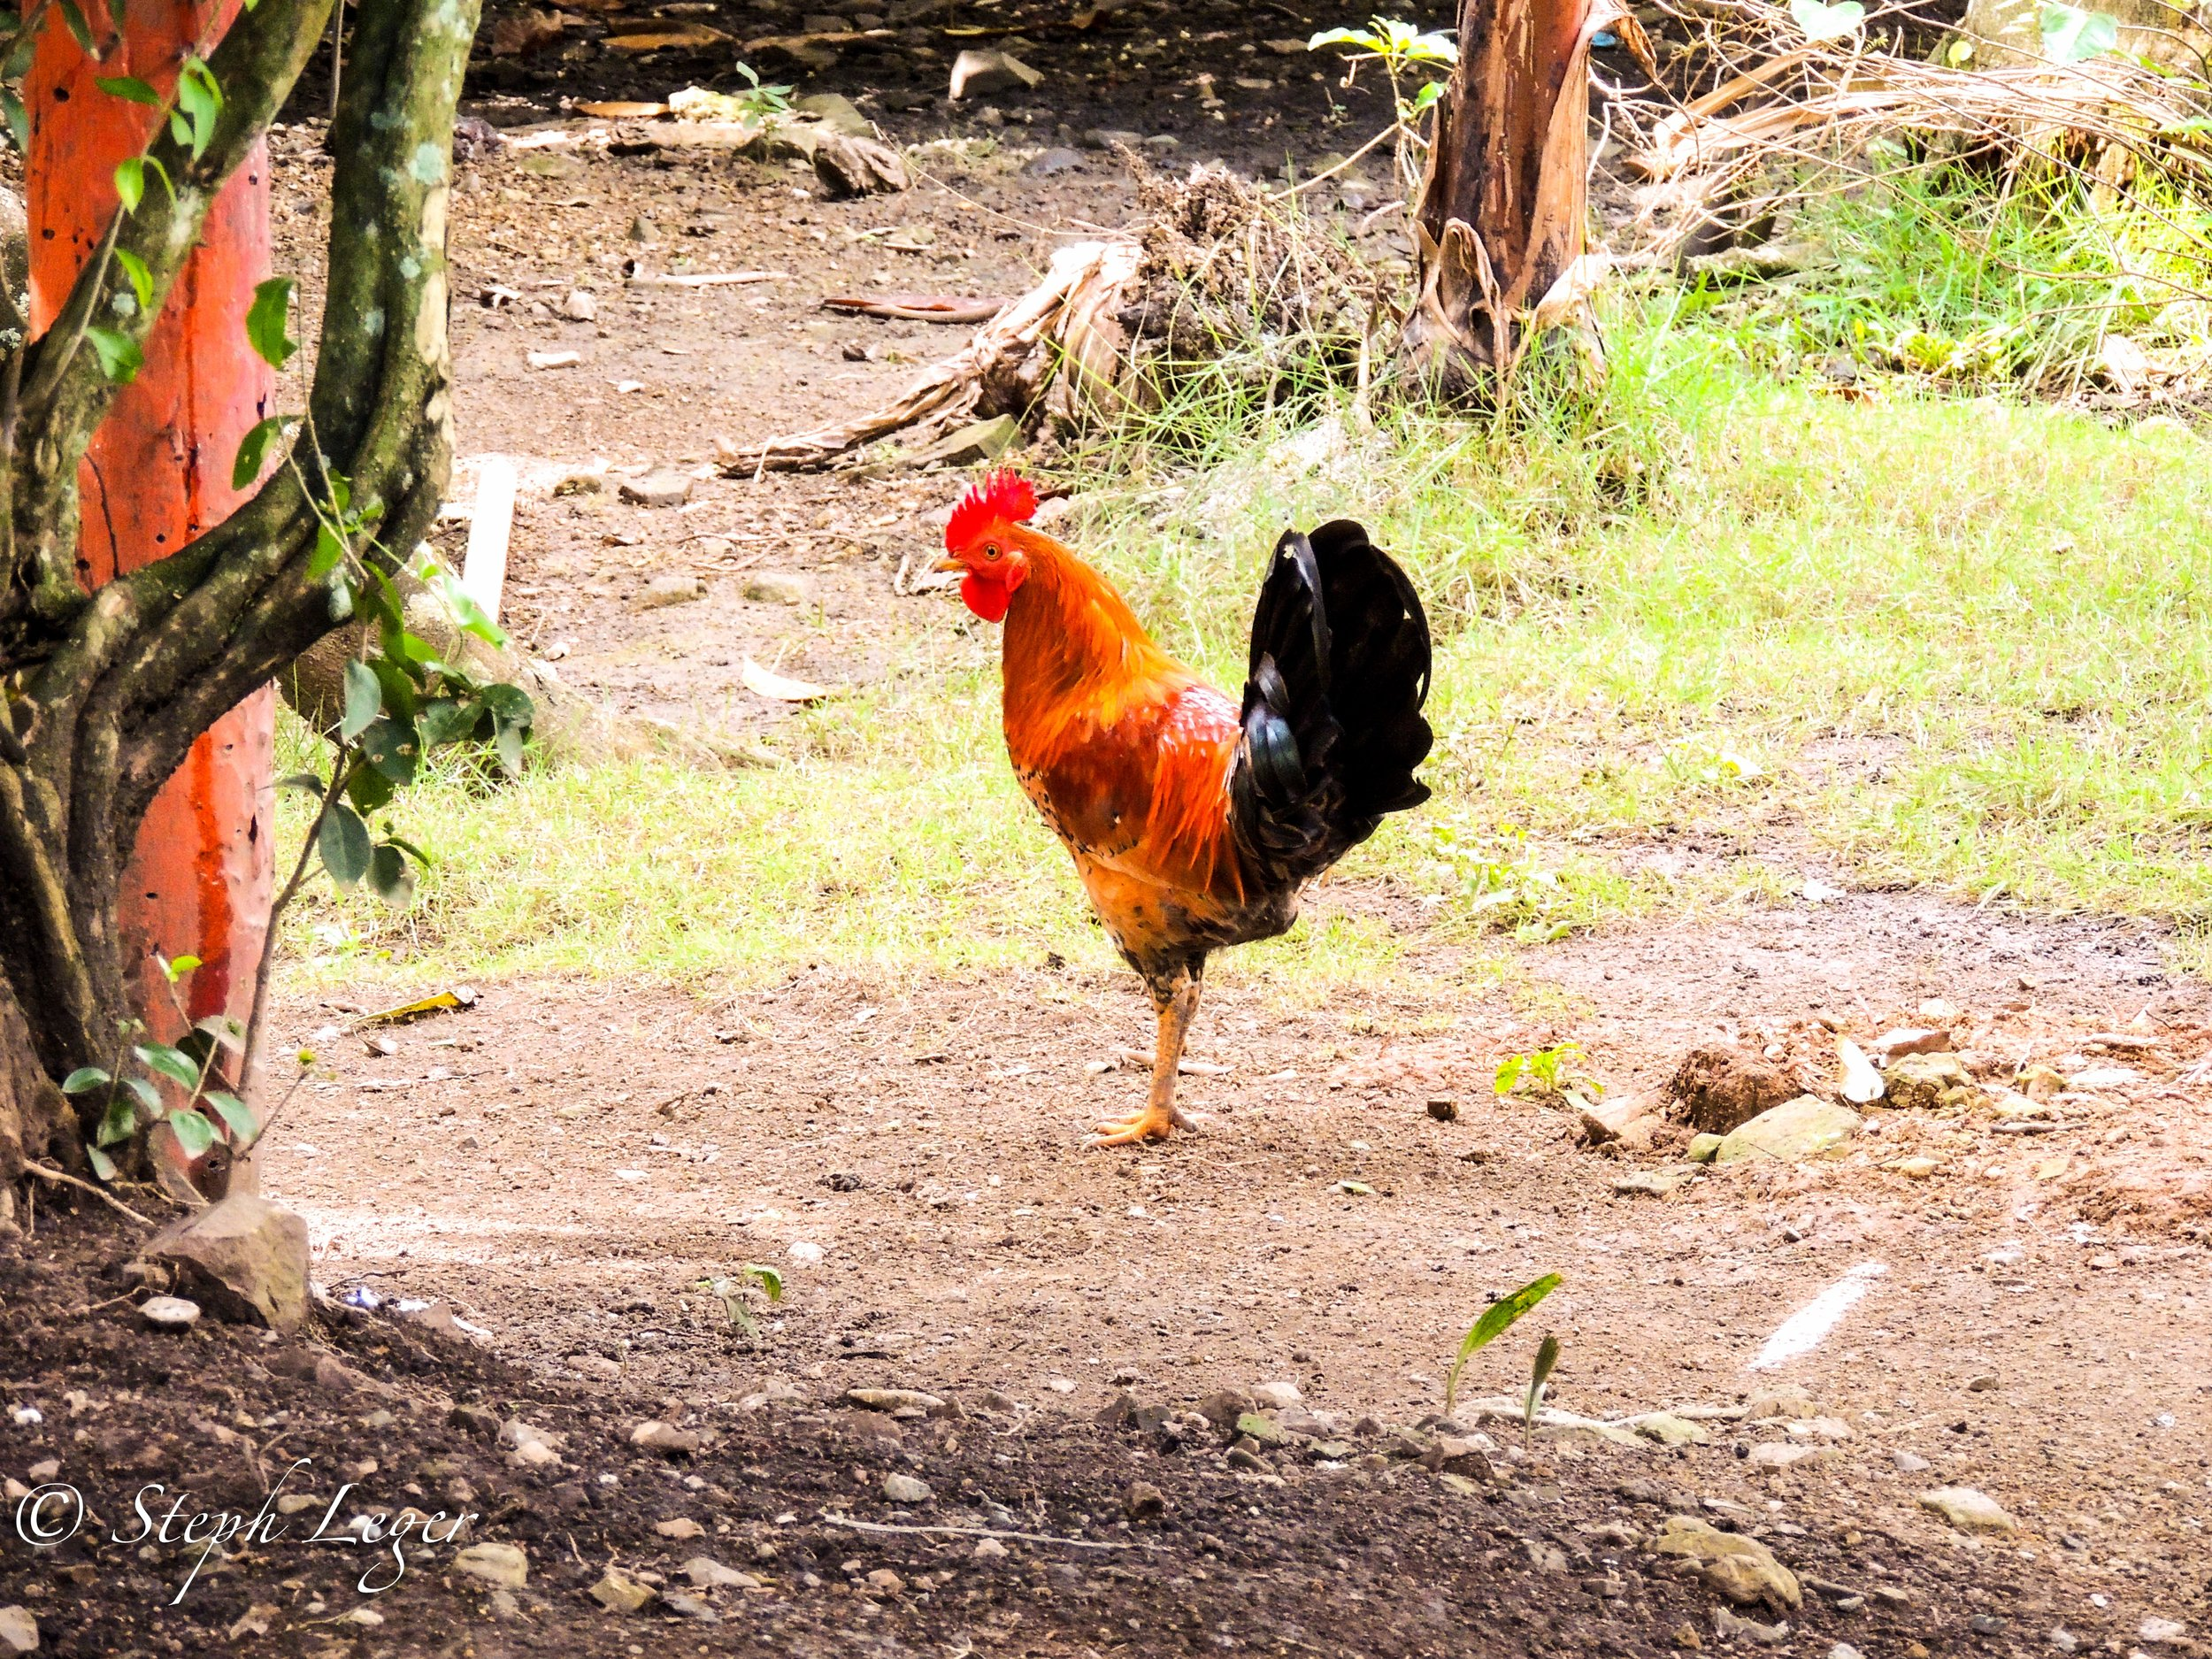 Red Junglefowl (Gallus gallus) in a Dominican yard